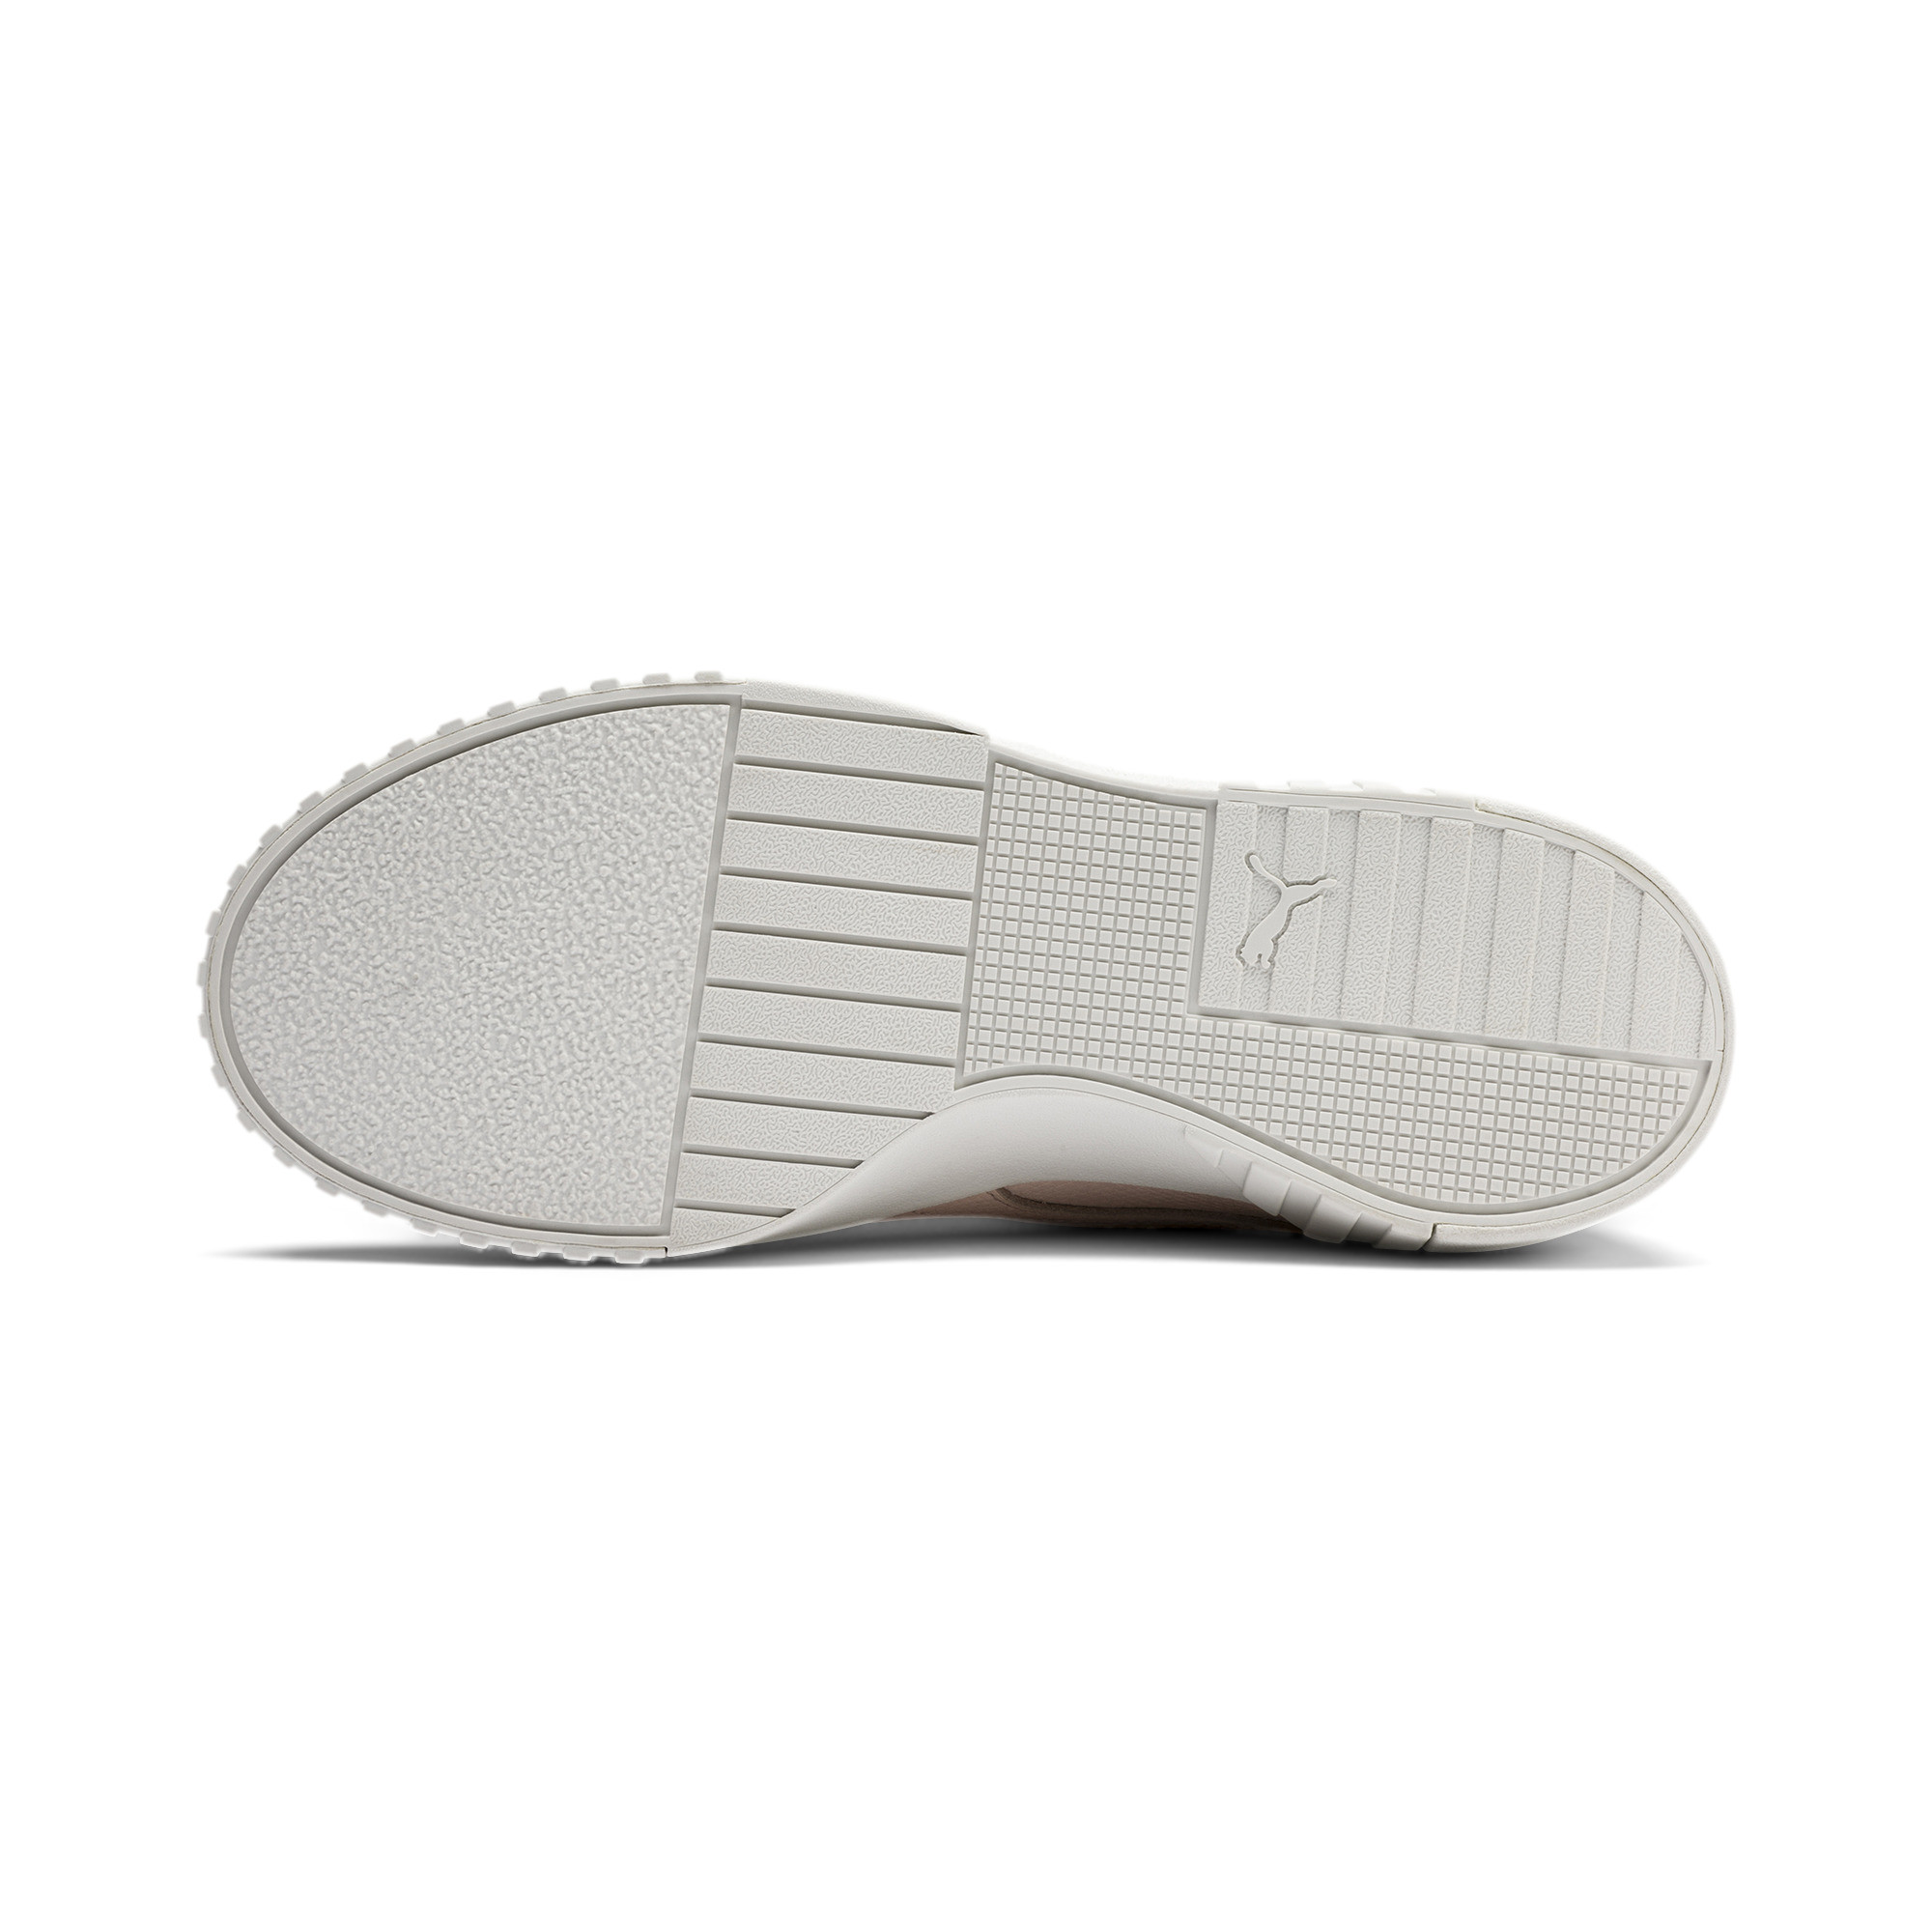 PUMA-Cali-Emboss-Women-039-s-Sneakers-Women-Shoe-Evolution thumbnail 13